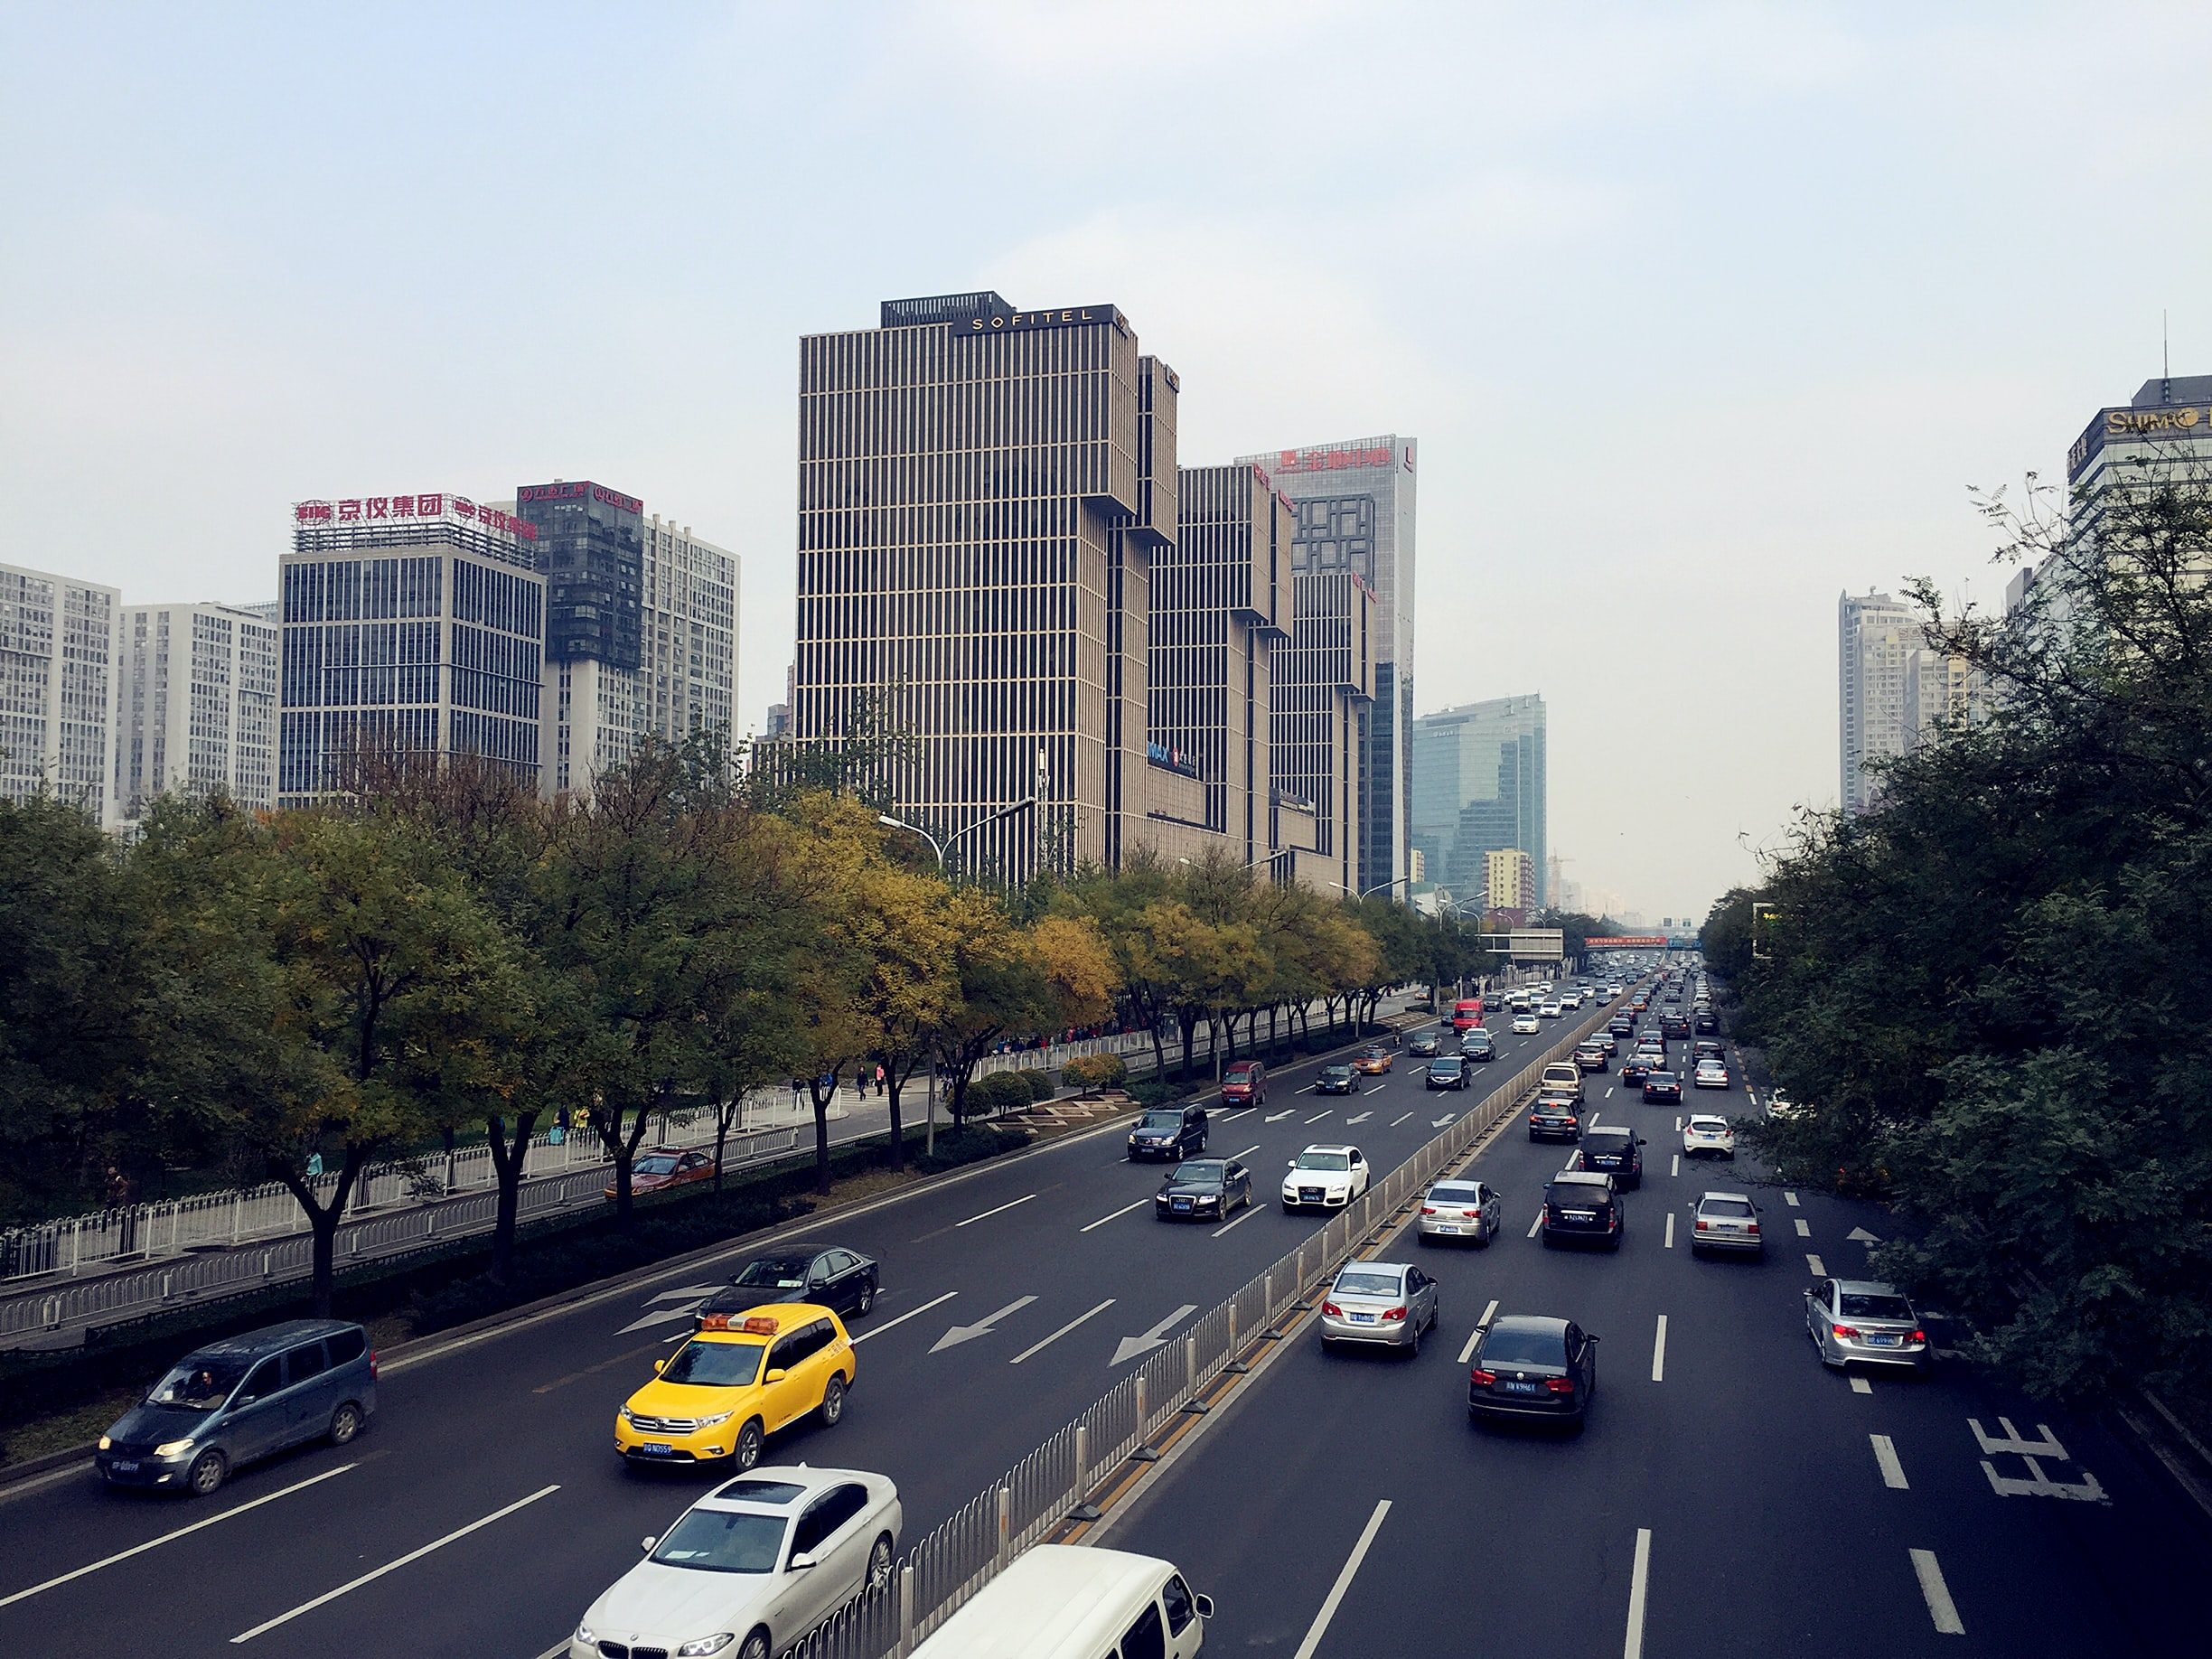 Urban highway with skyscrapers and busy traffic during the day in Guomao